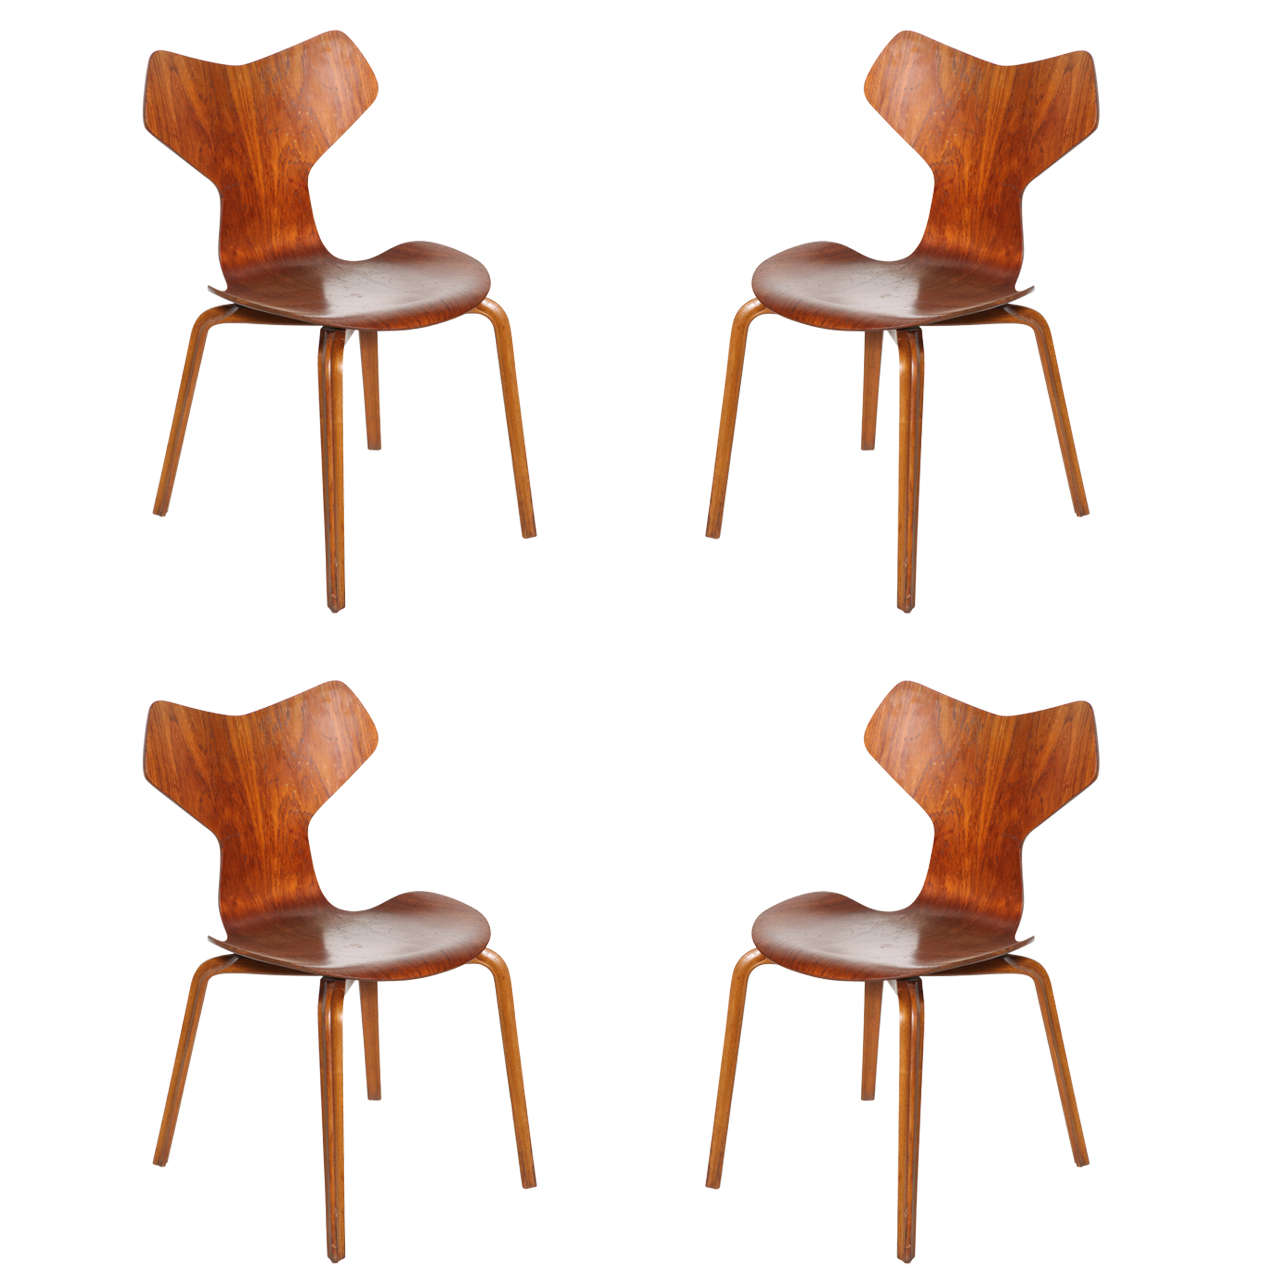 grand prix chairs by arne jacobsen original teak set of. Black Bedroom Furniture Sets. Home Design Ideas